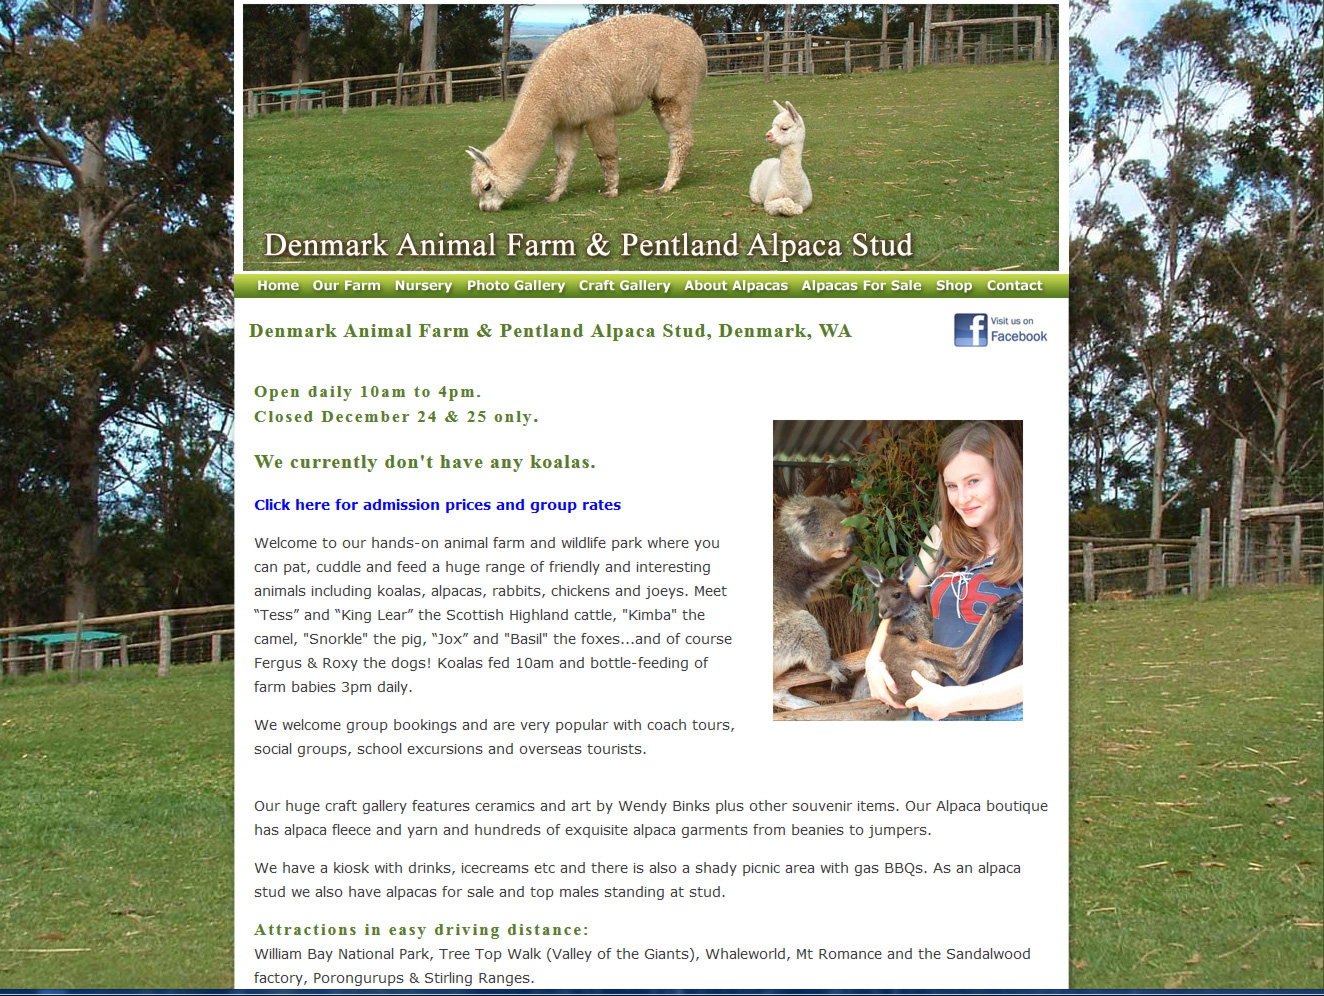 Denmark Animal Farm and Pentland Alpaca Stud, Denmark, WA